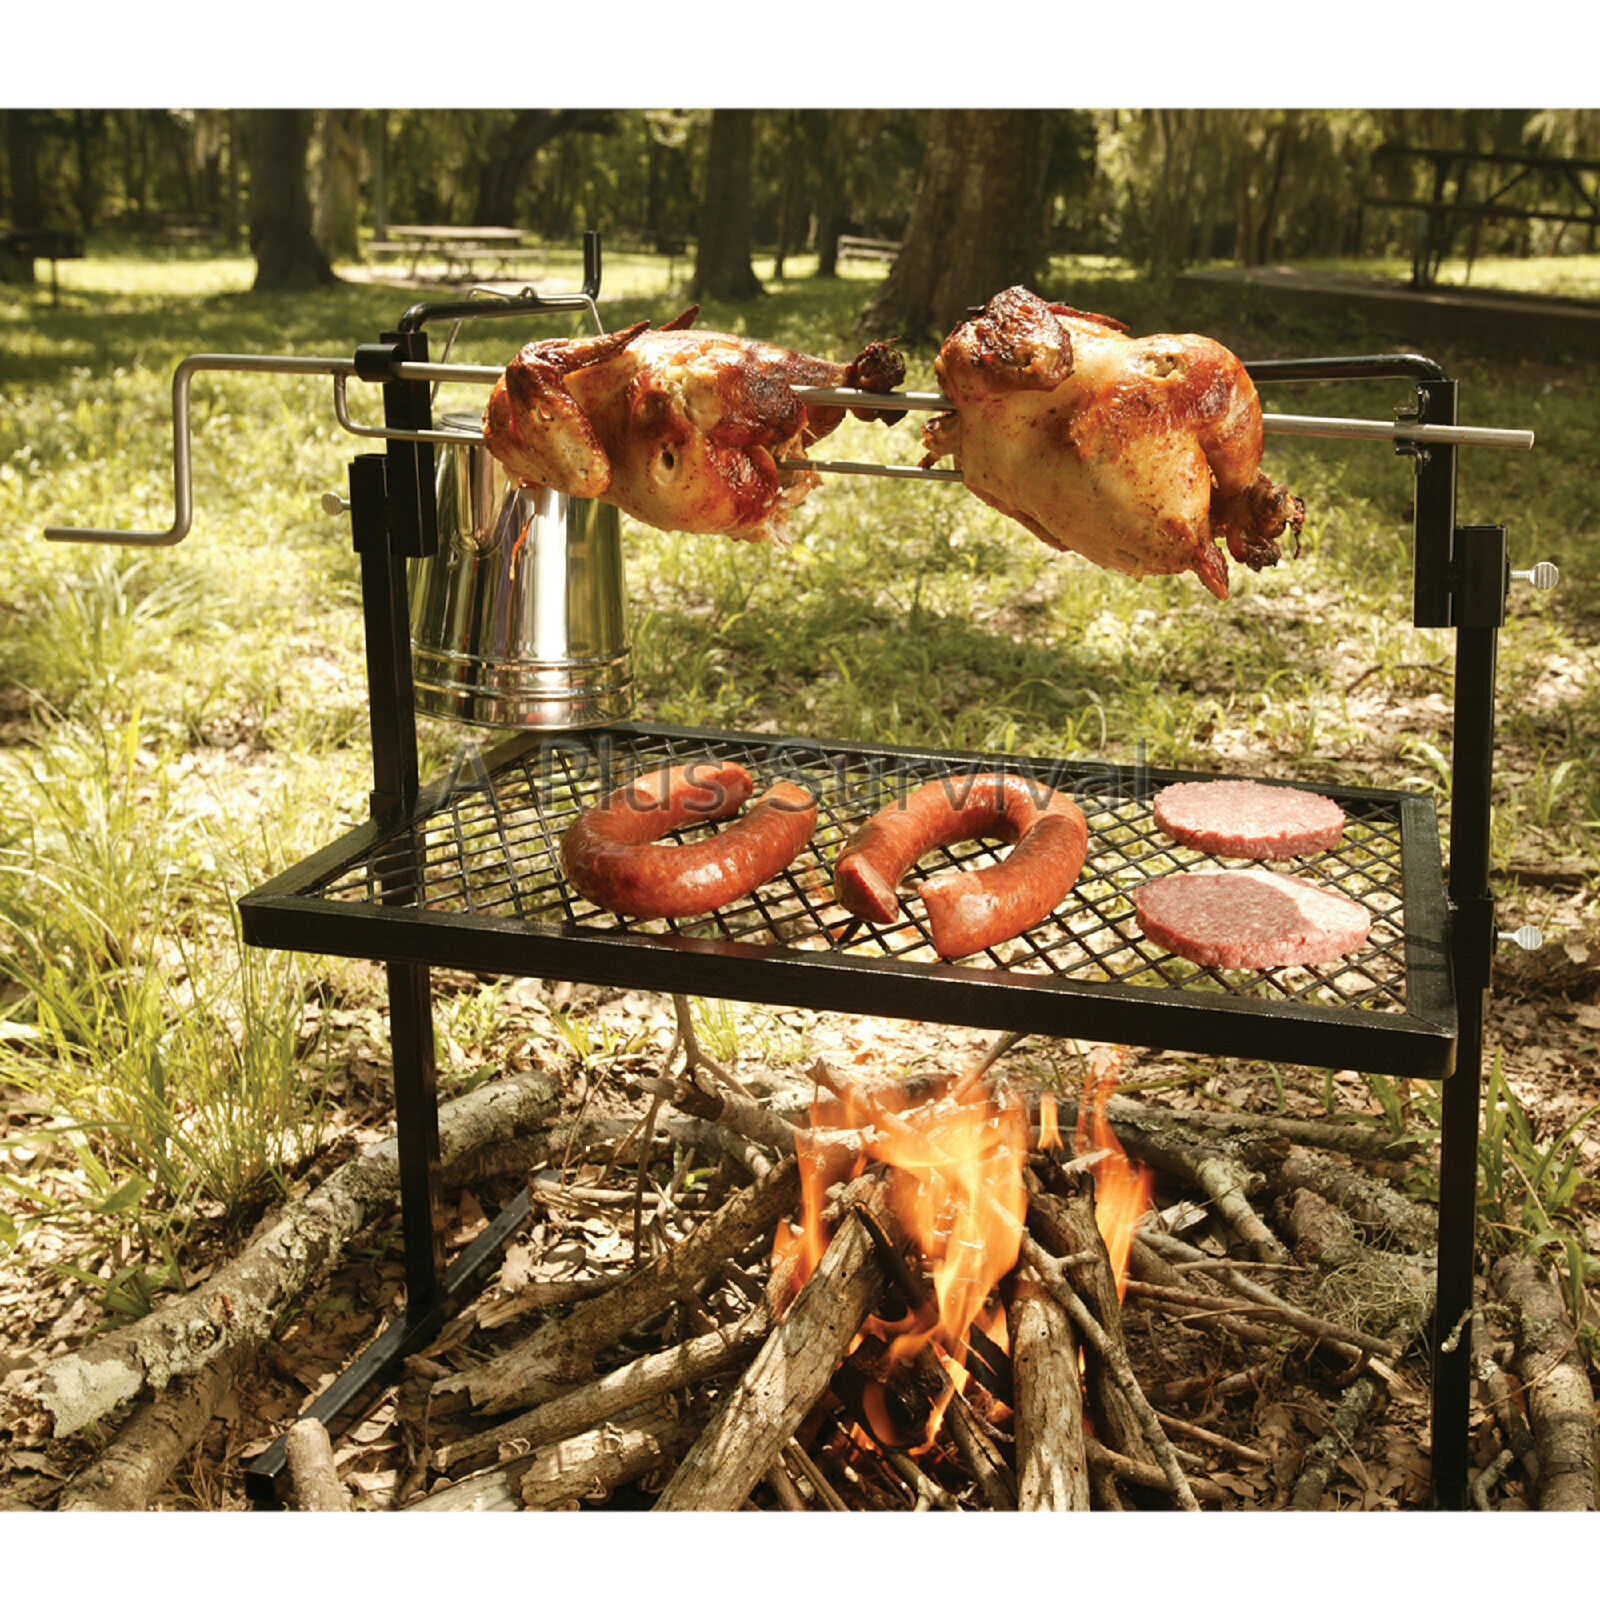 Camp Great Fire Rotisserie Grill & Spit - Great Camp for Camping 079794